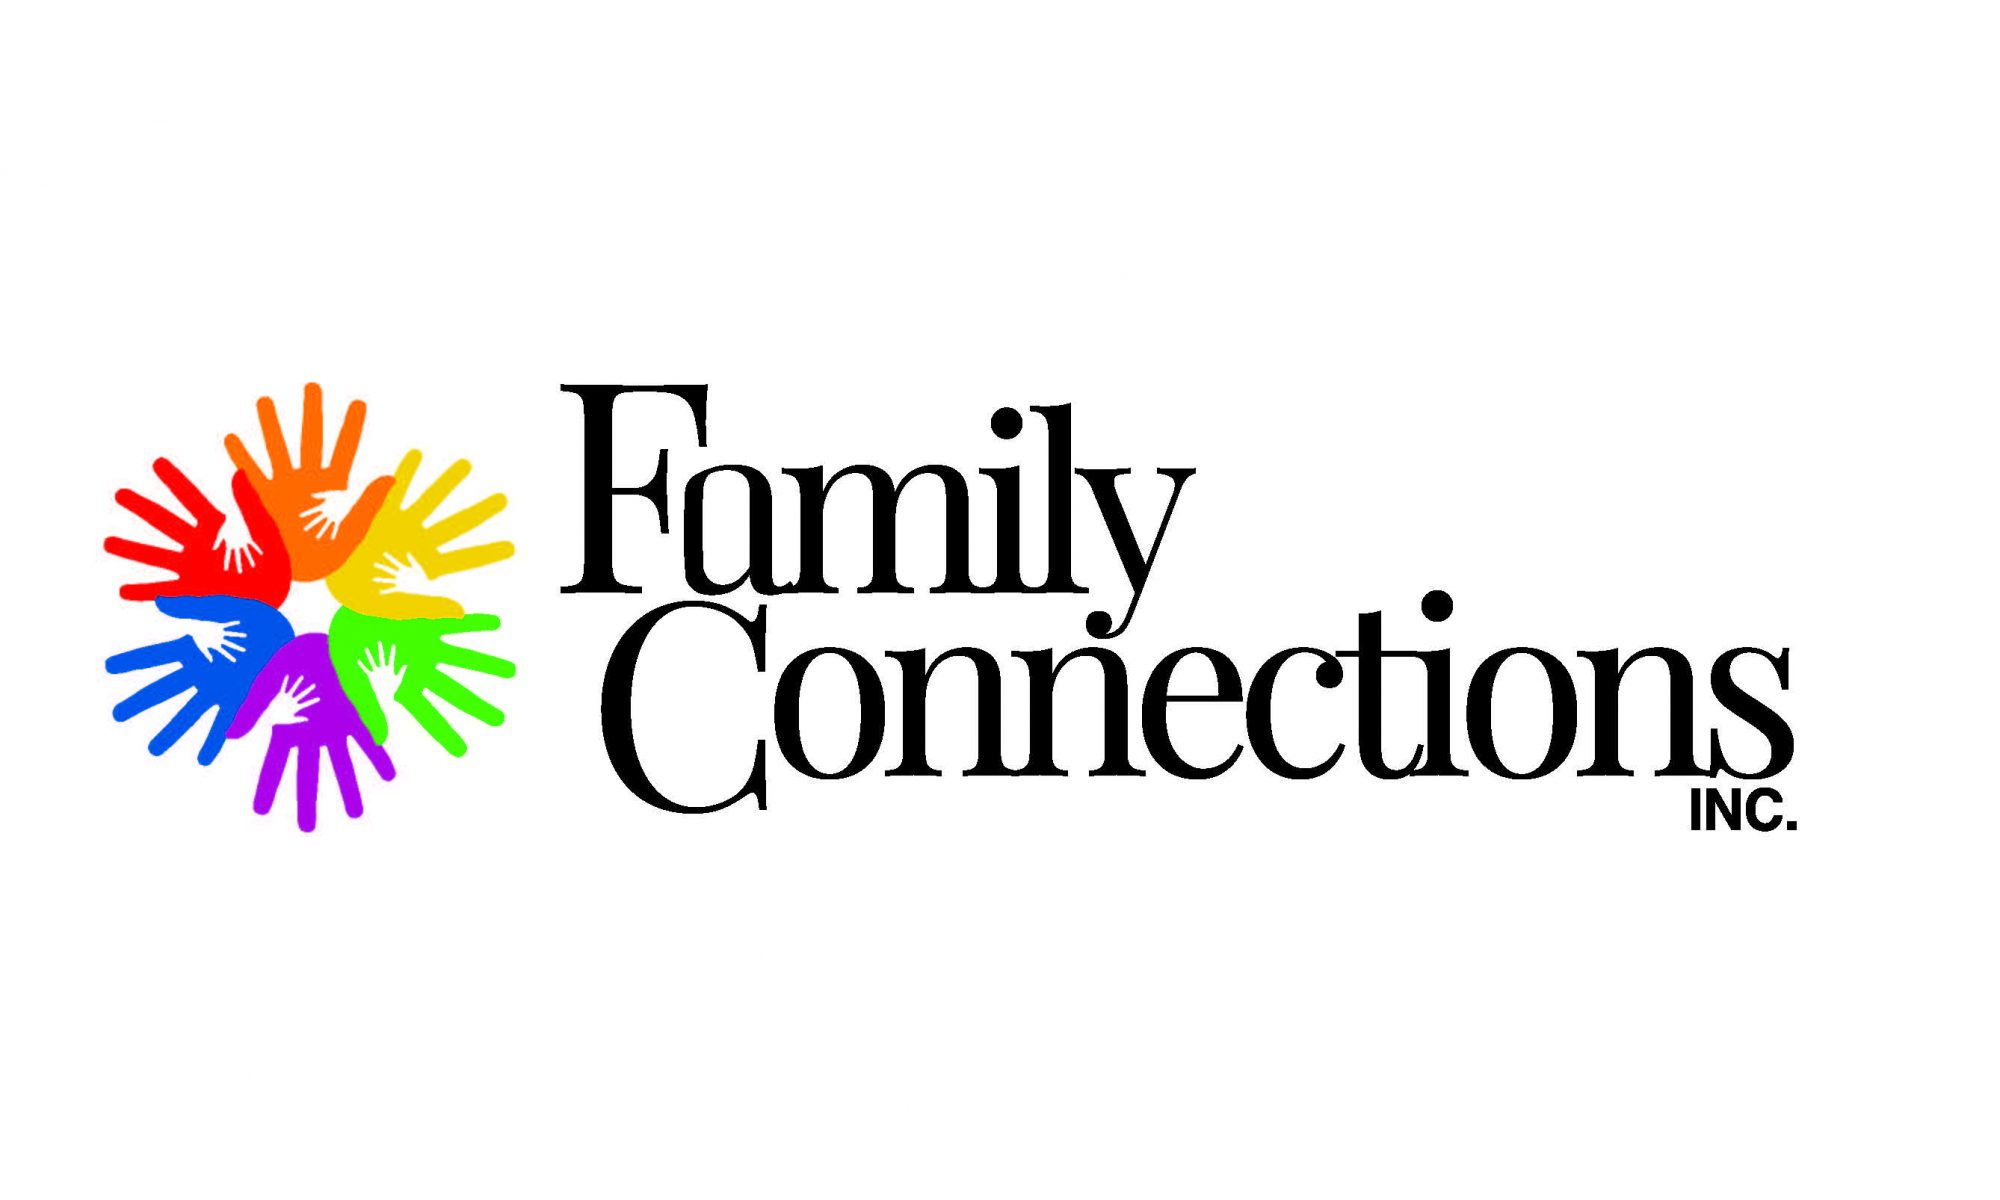 Family Connections, Inc.